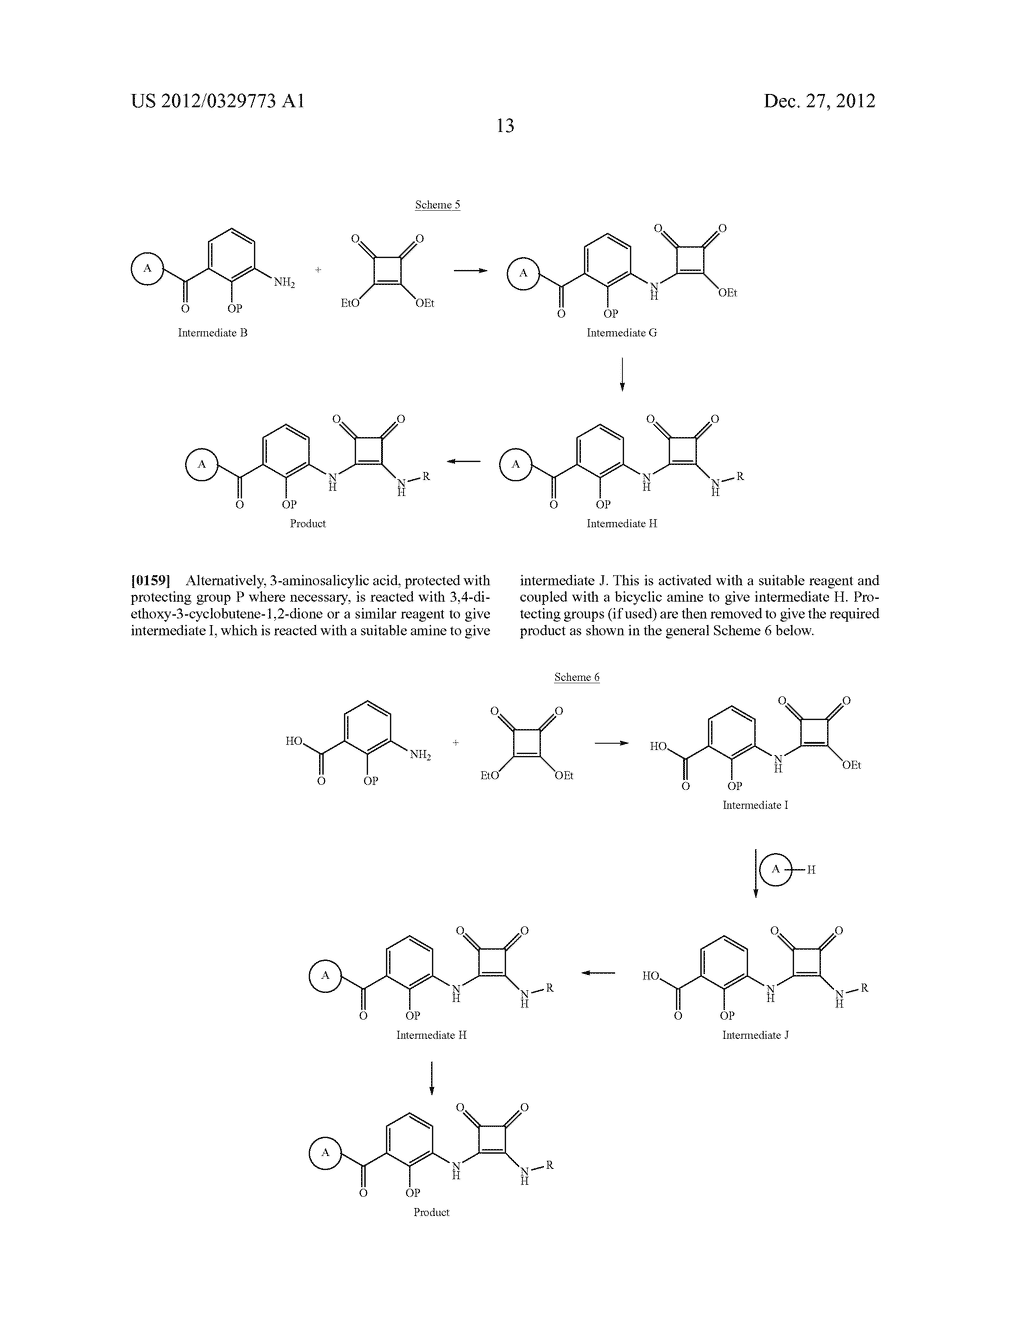 BICYCLIC RING SYSTEM SUBSTITUTED AMIDE FUNCTIONALISED PHENOLS AS     MEDICAMENTS - diagram, schematic, and image 14